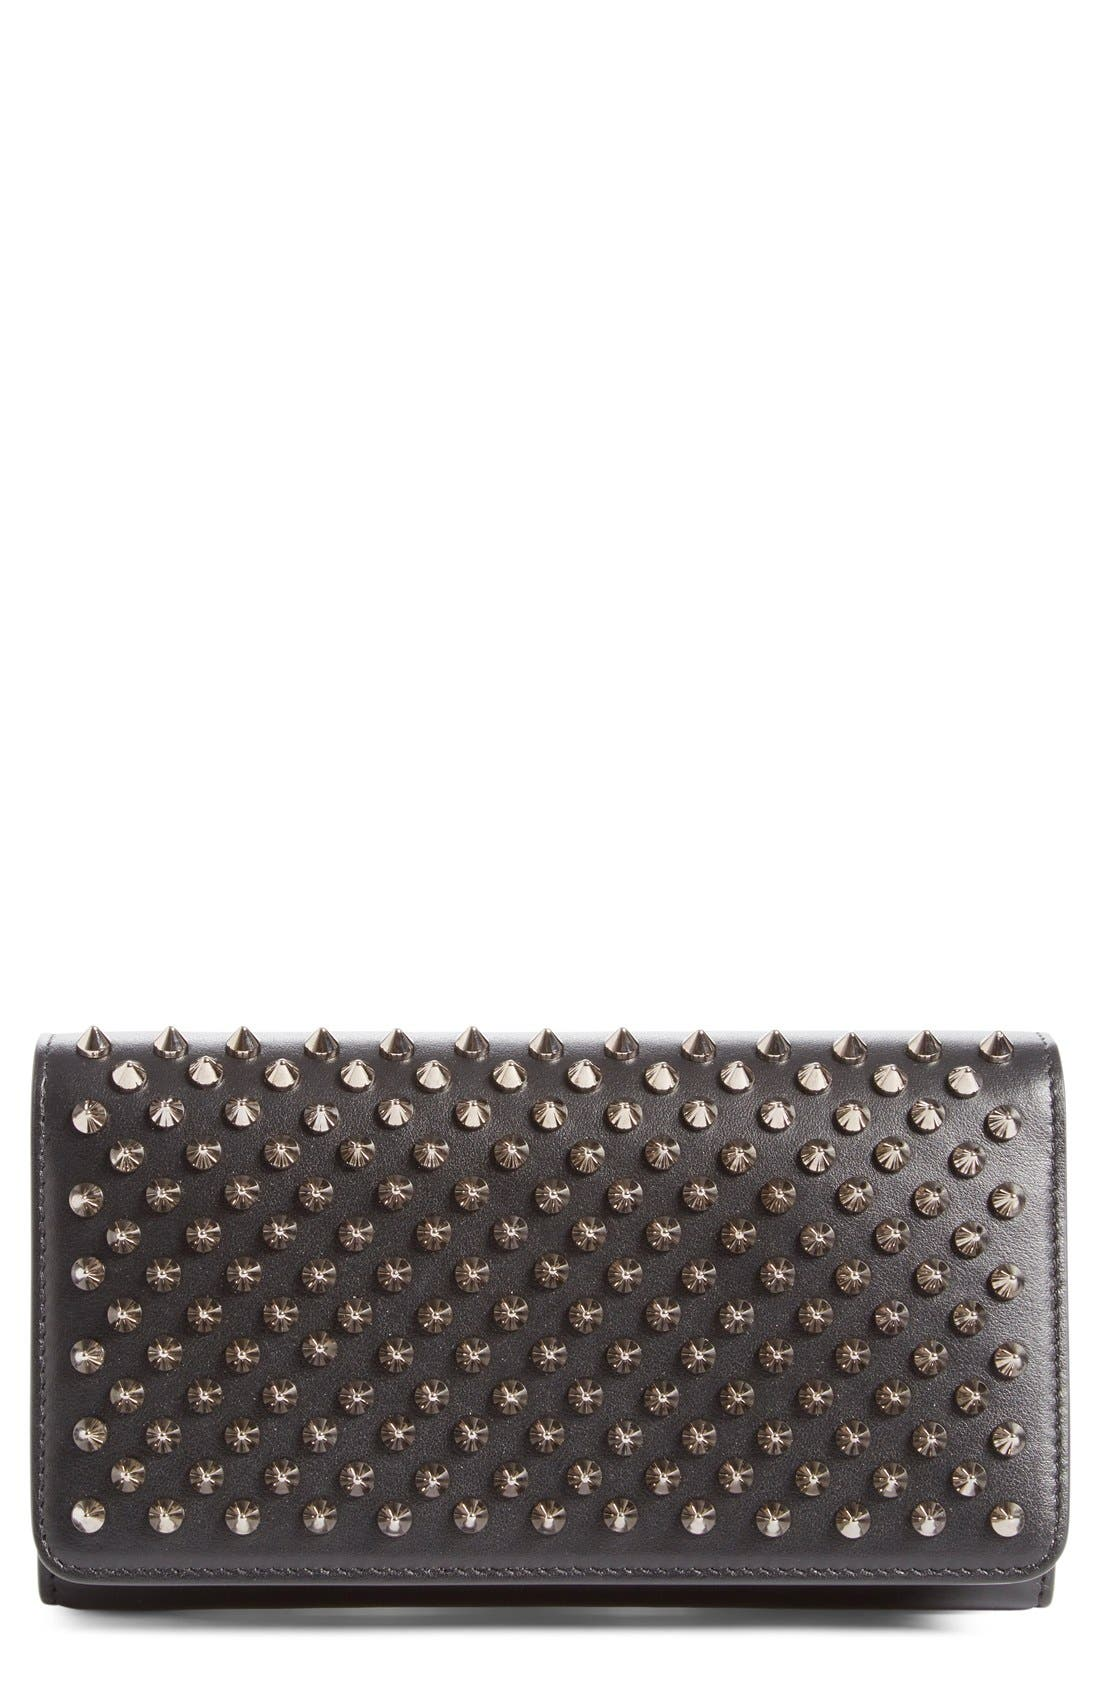 Christian Louboutin 'Macaron' Studded Leather Continental Wallet